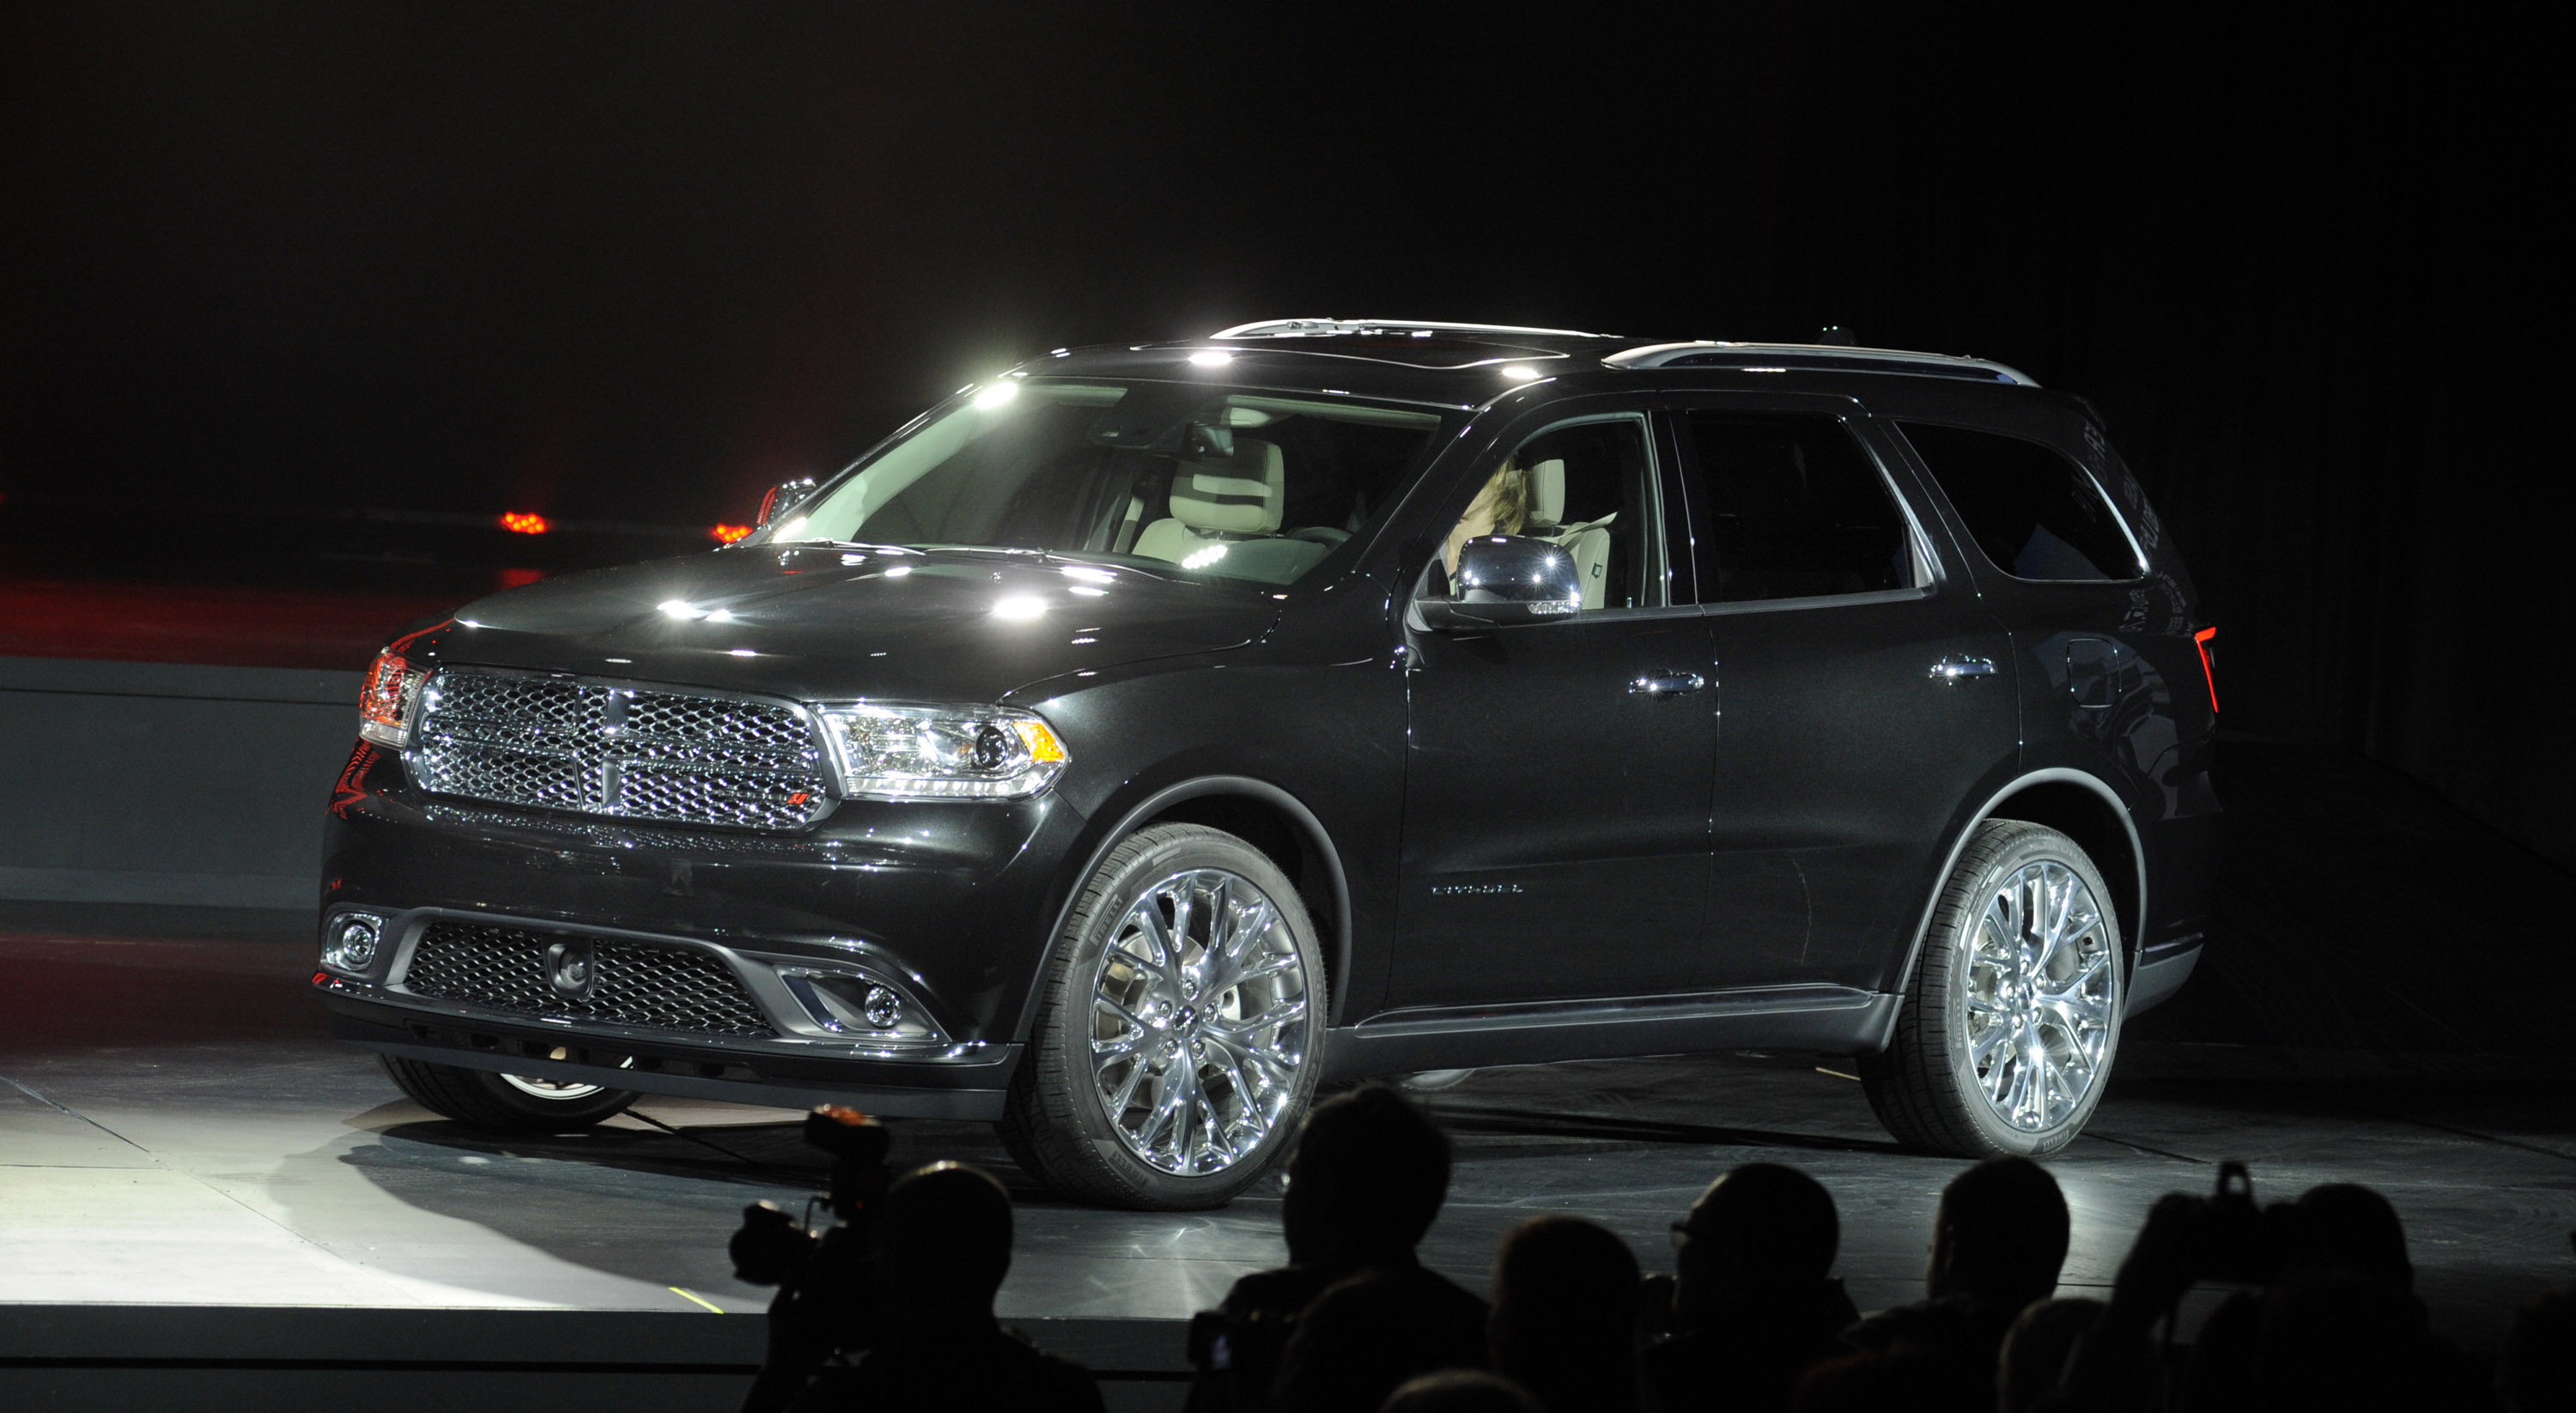 t r speed top review cars durango dodge